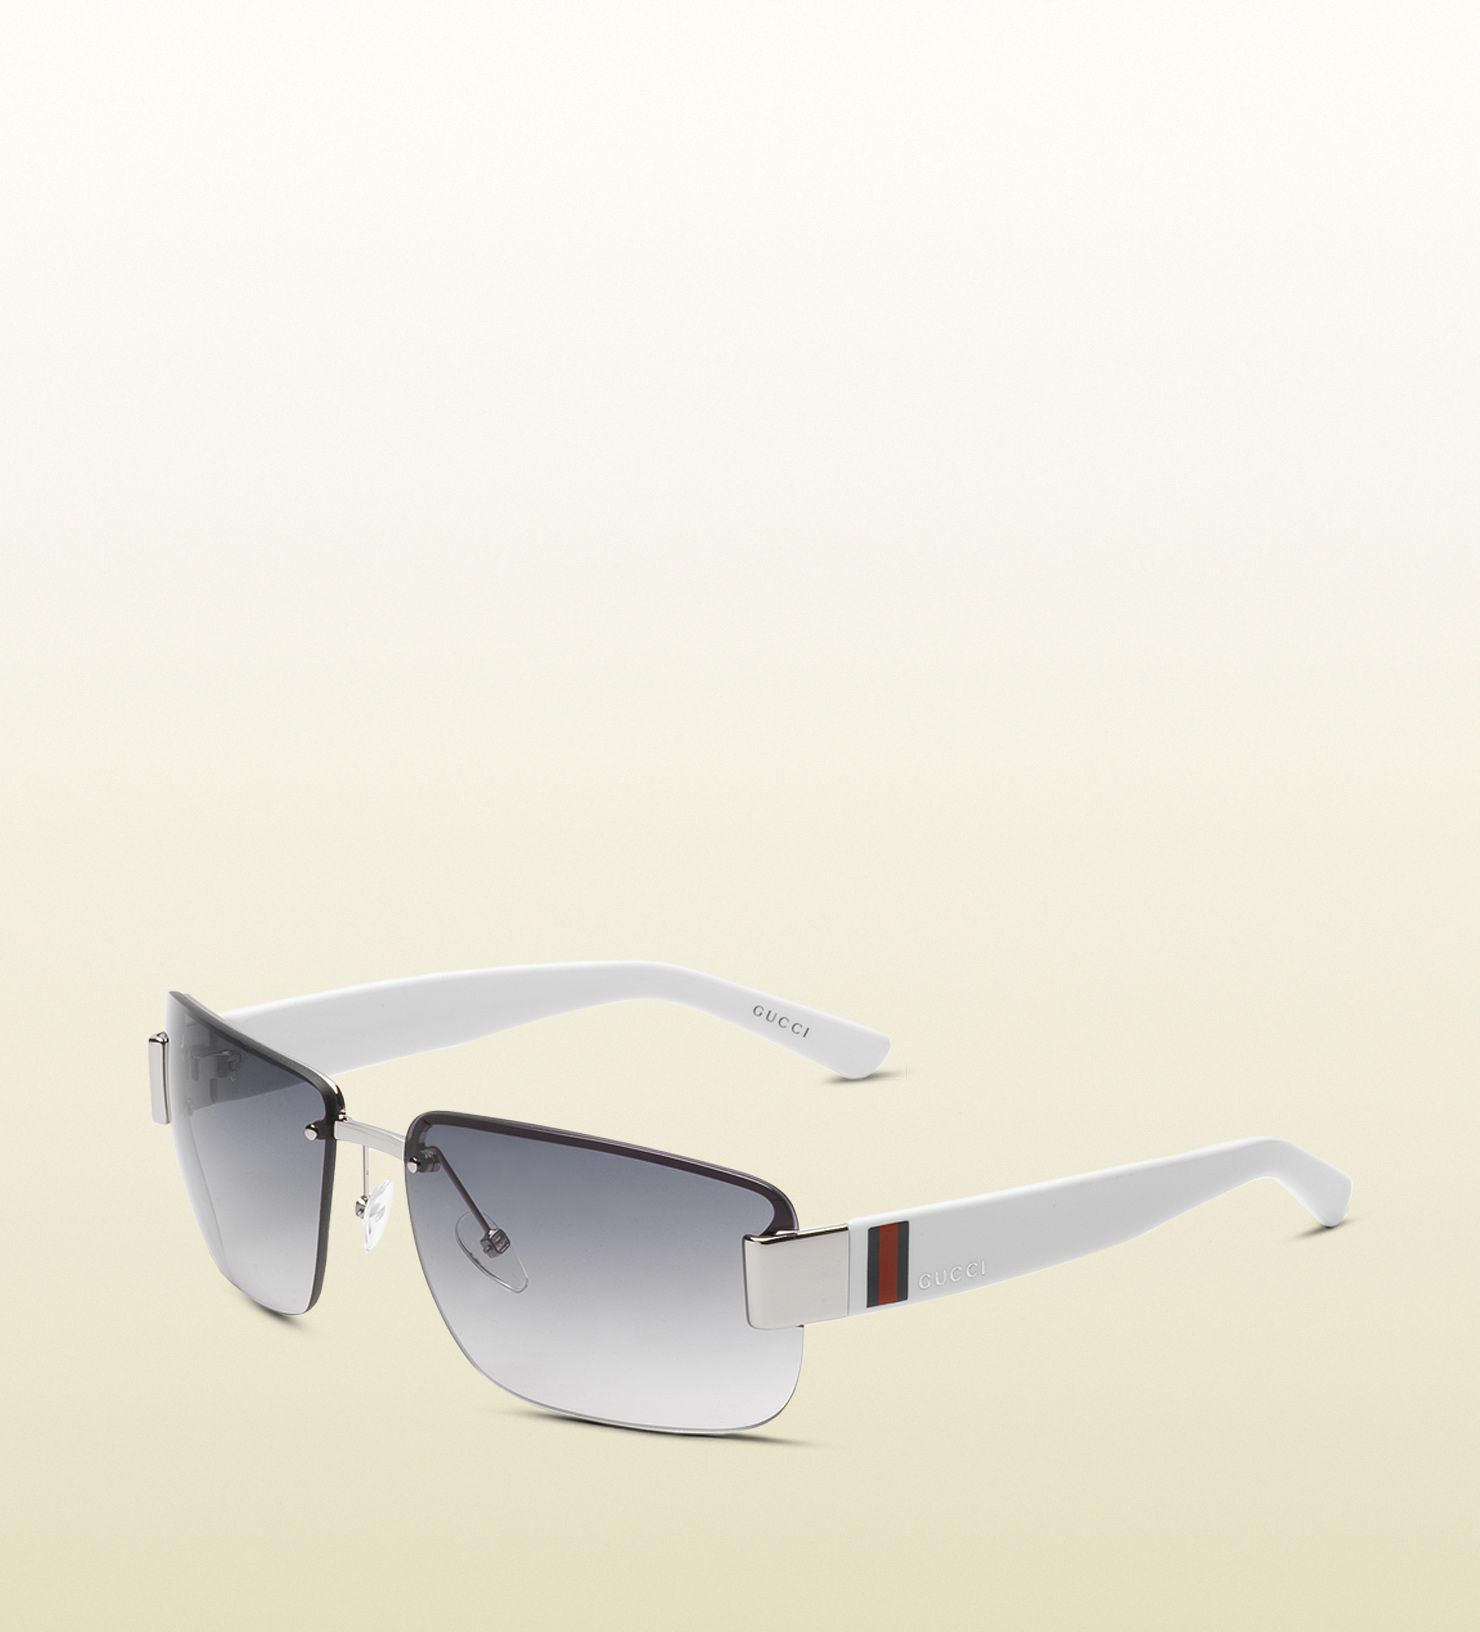 756e803a74b medium rimless sunglasses with gucci logo and signature web detail on  temple.